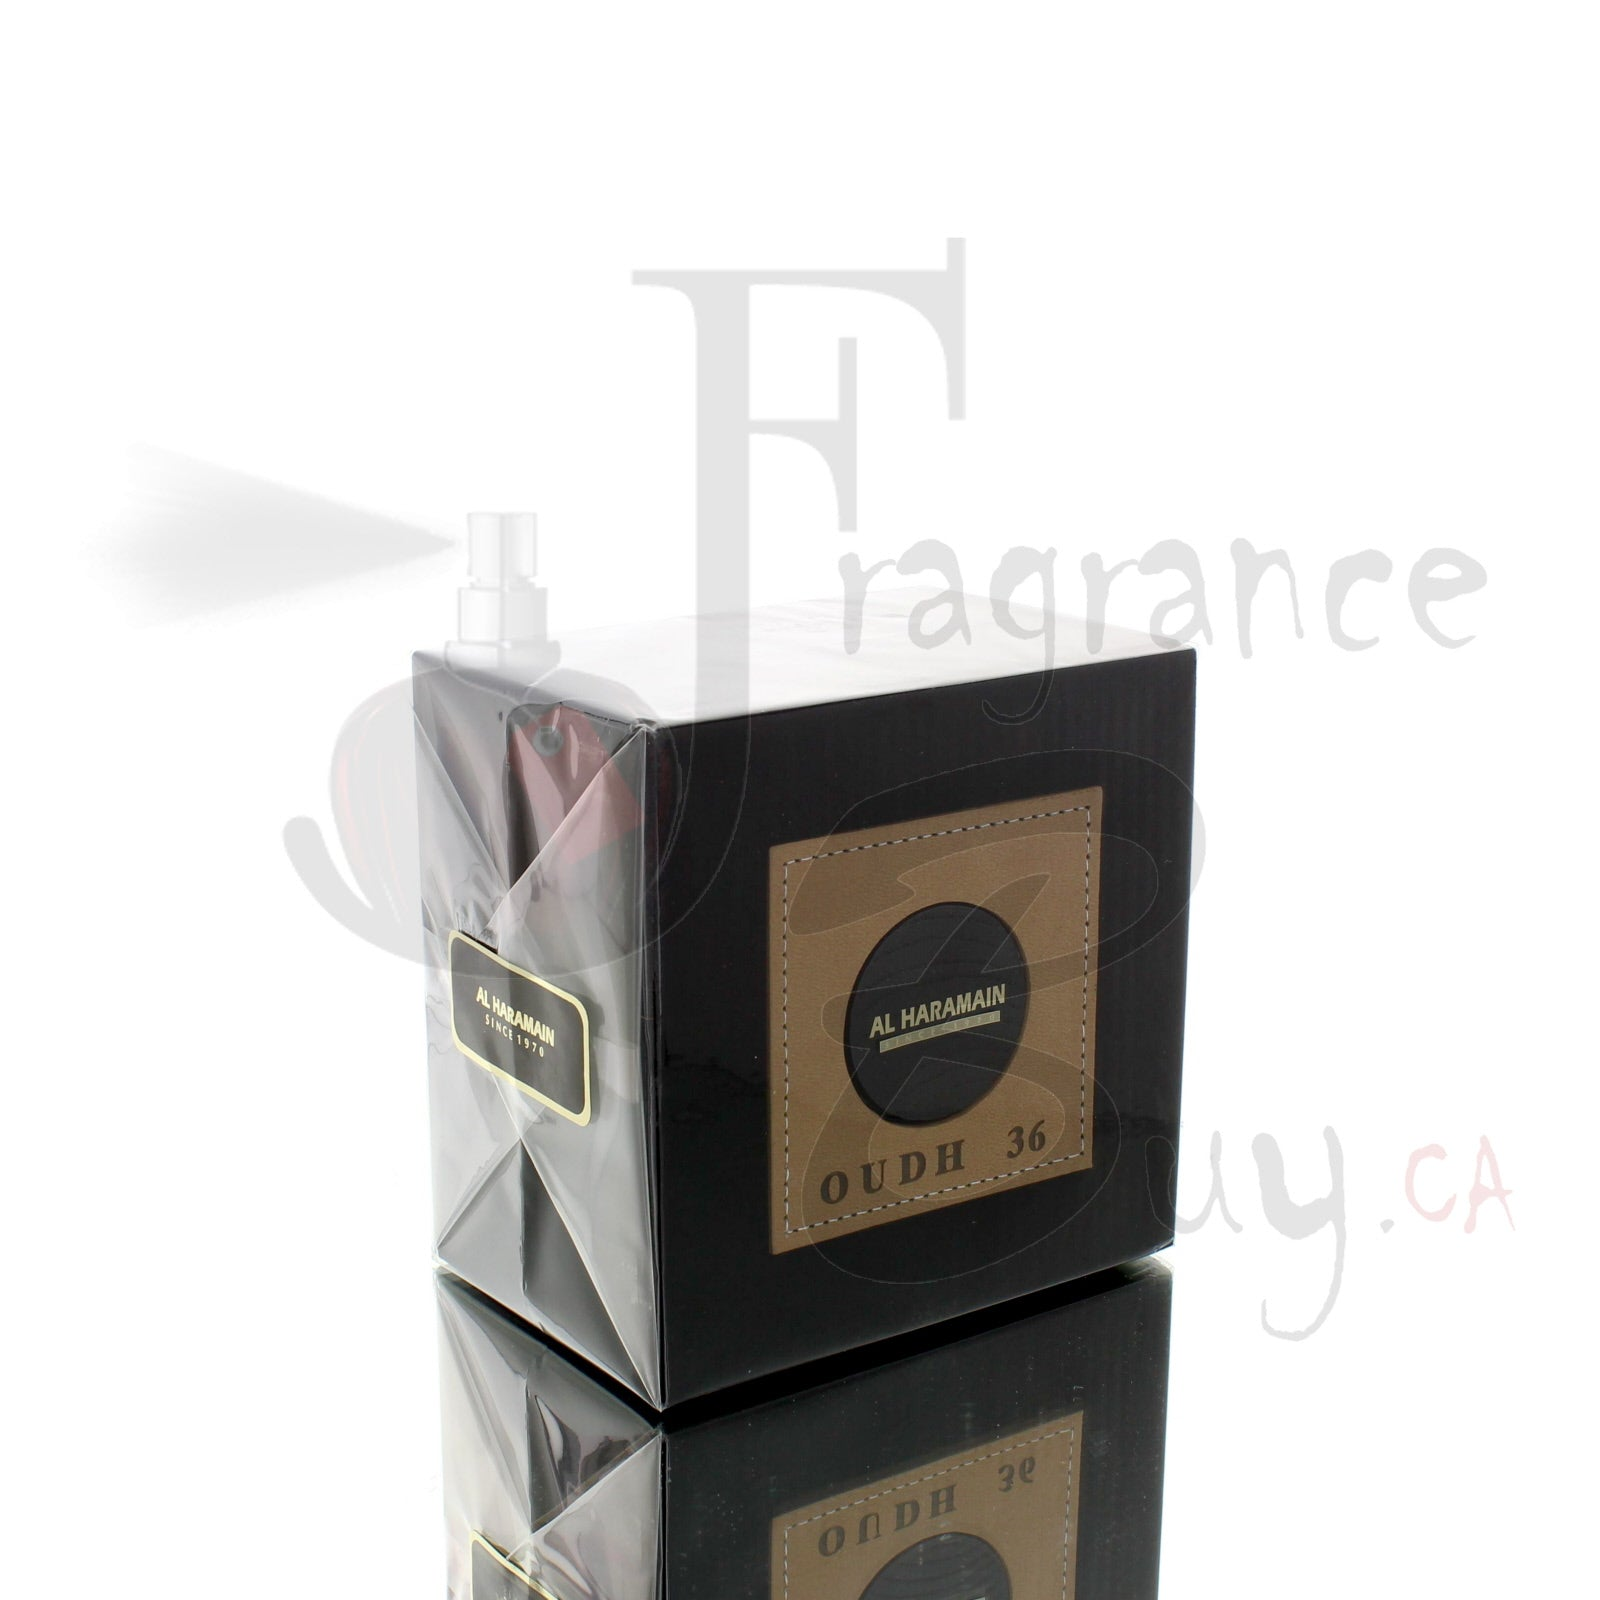 Al Haramain Oudh 36 For Man